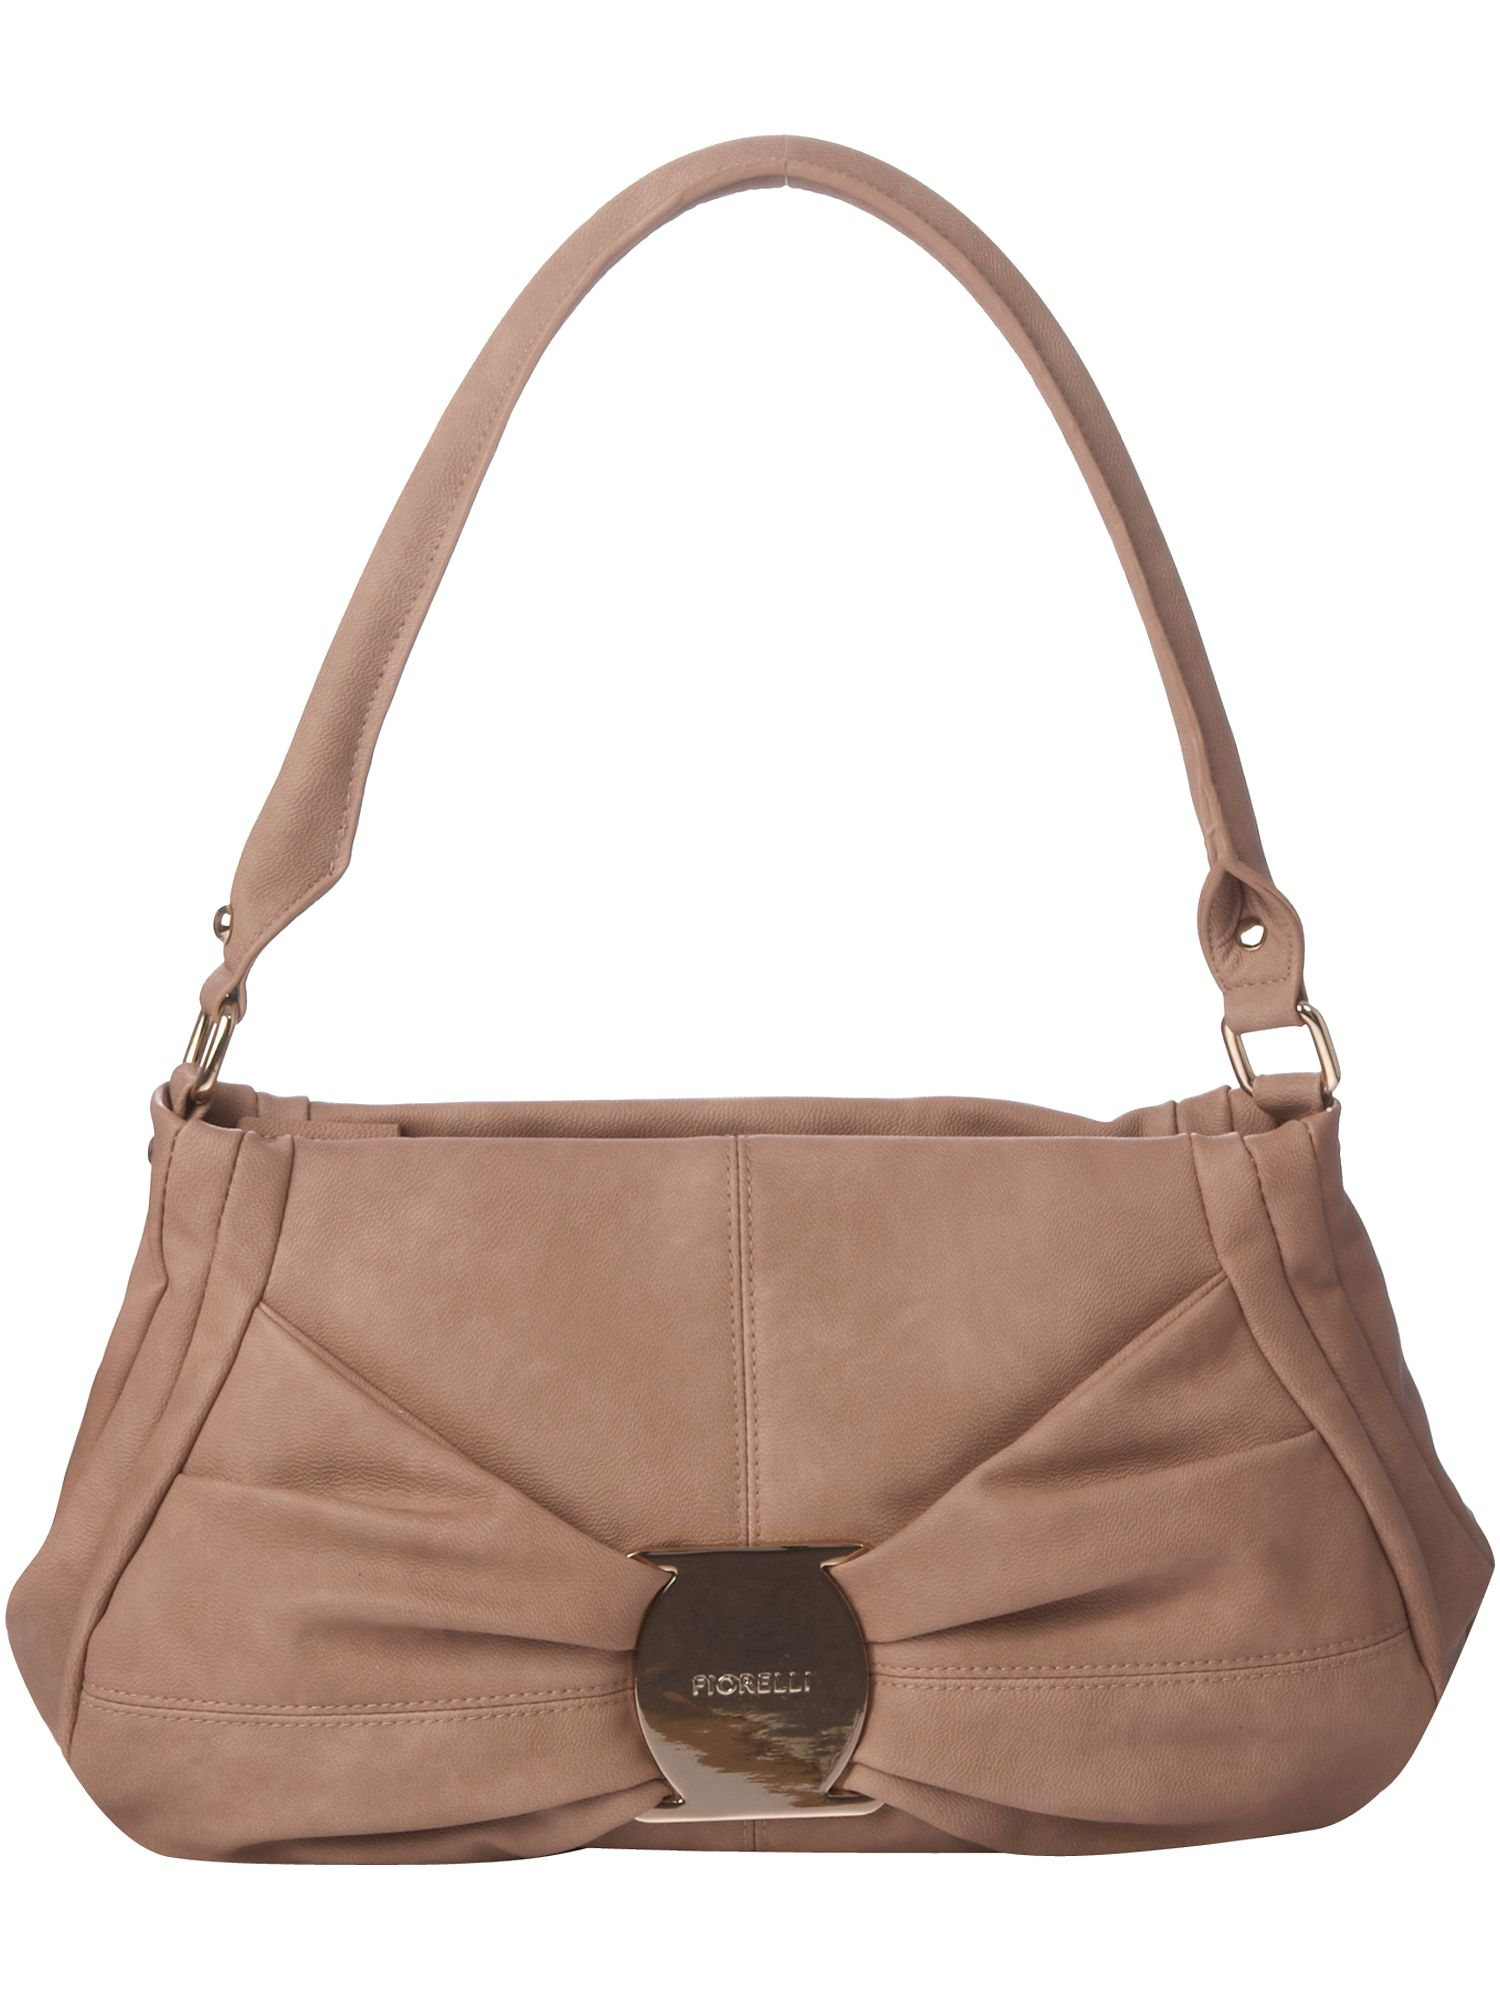 Fiorelli Honolulu, Evening wear shoulder bag product image